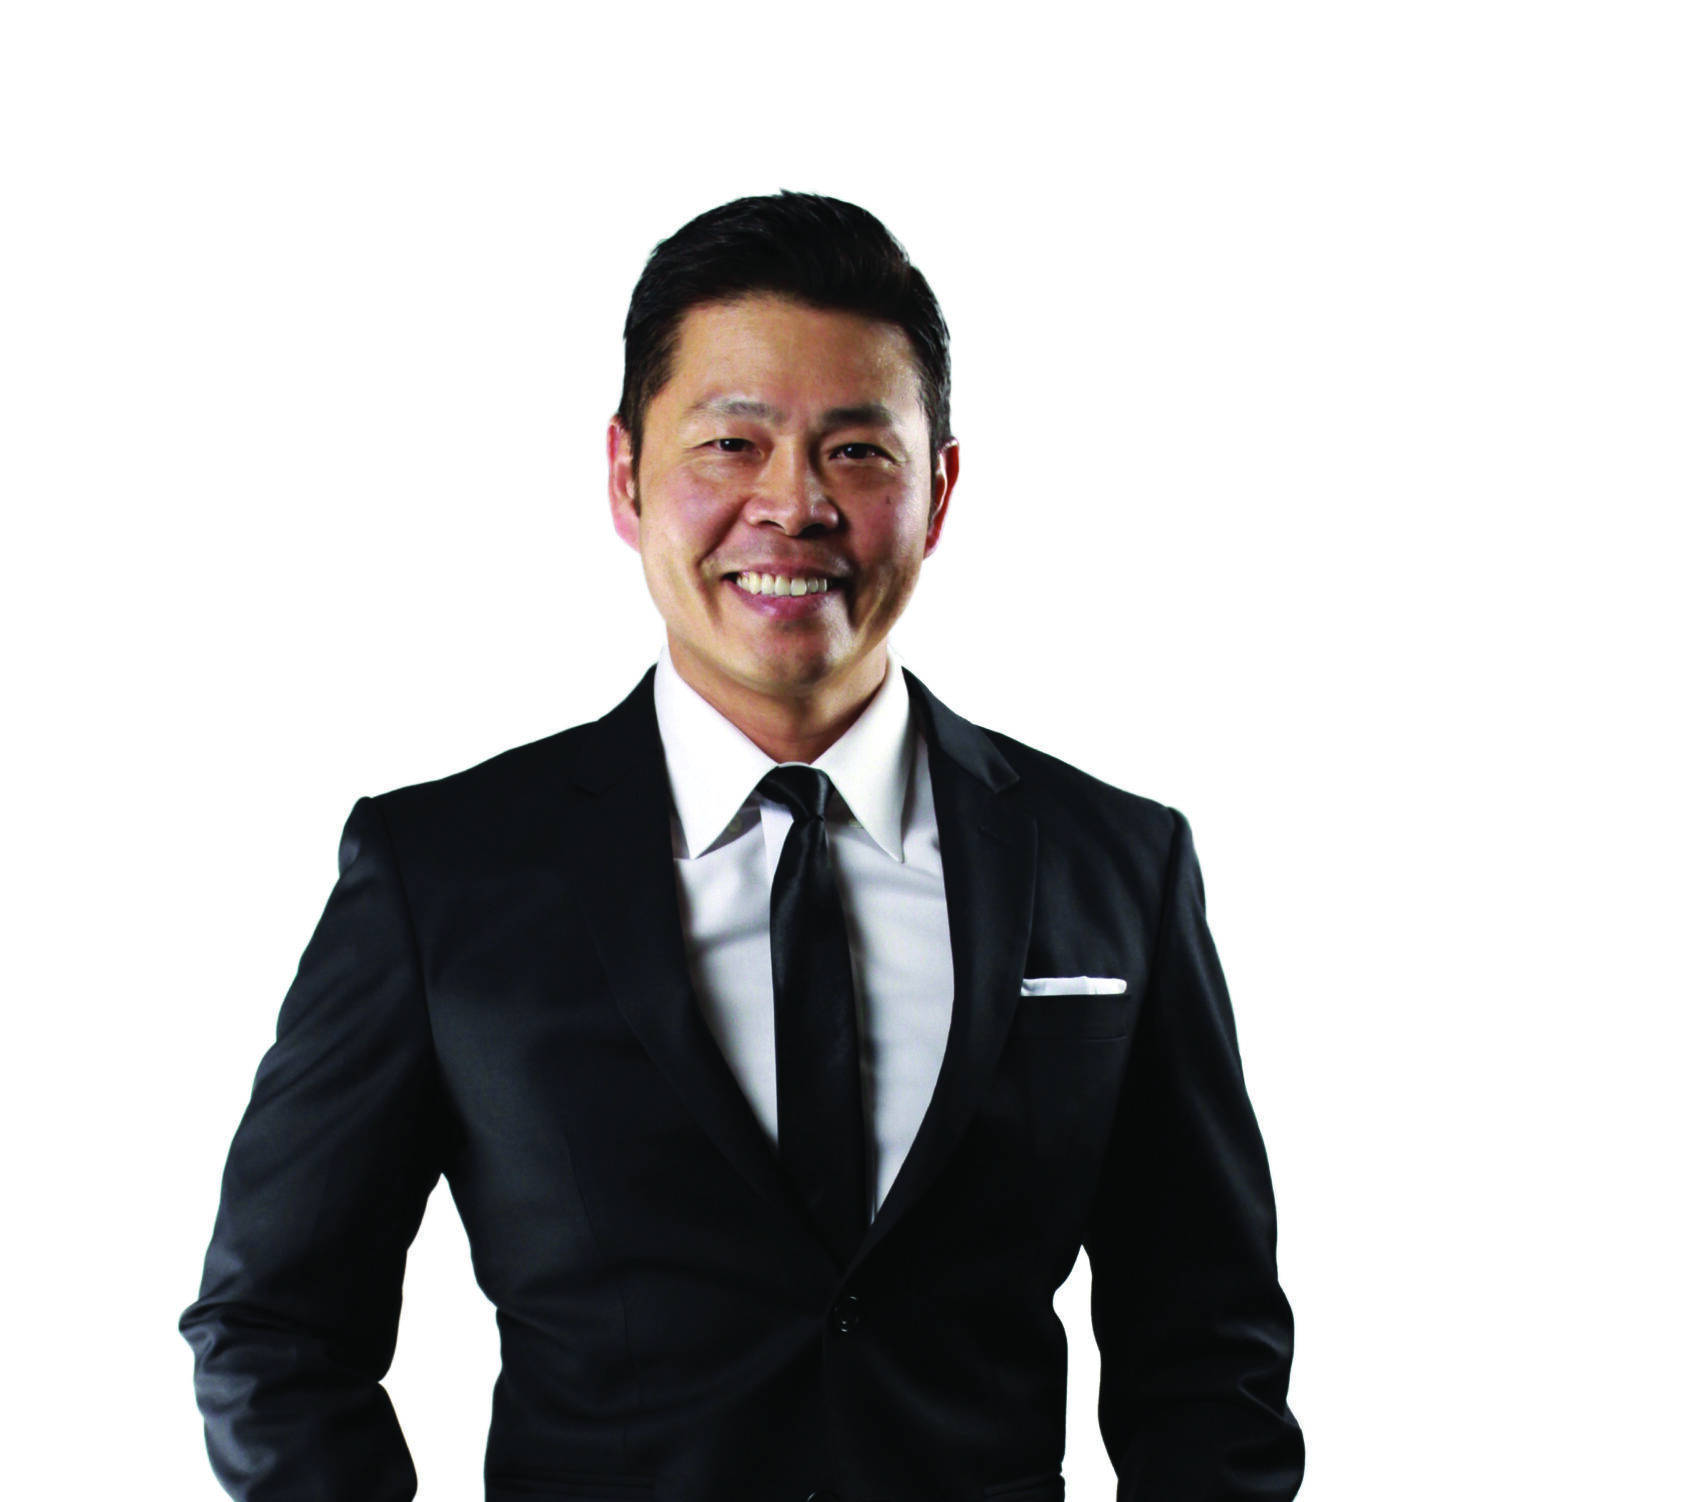 REAL ESTATE ROCKSTAR: Shane Nguyen